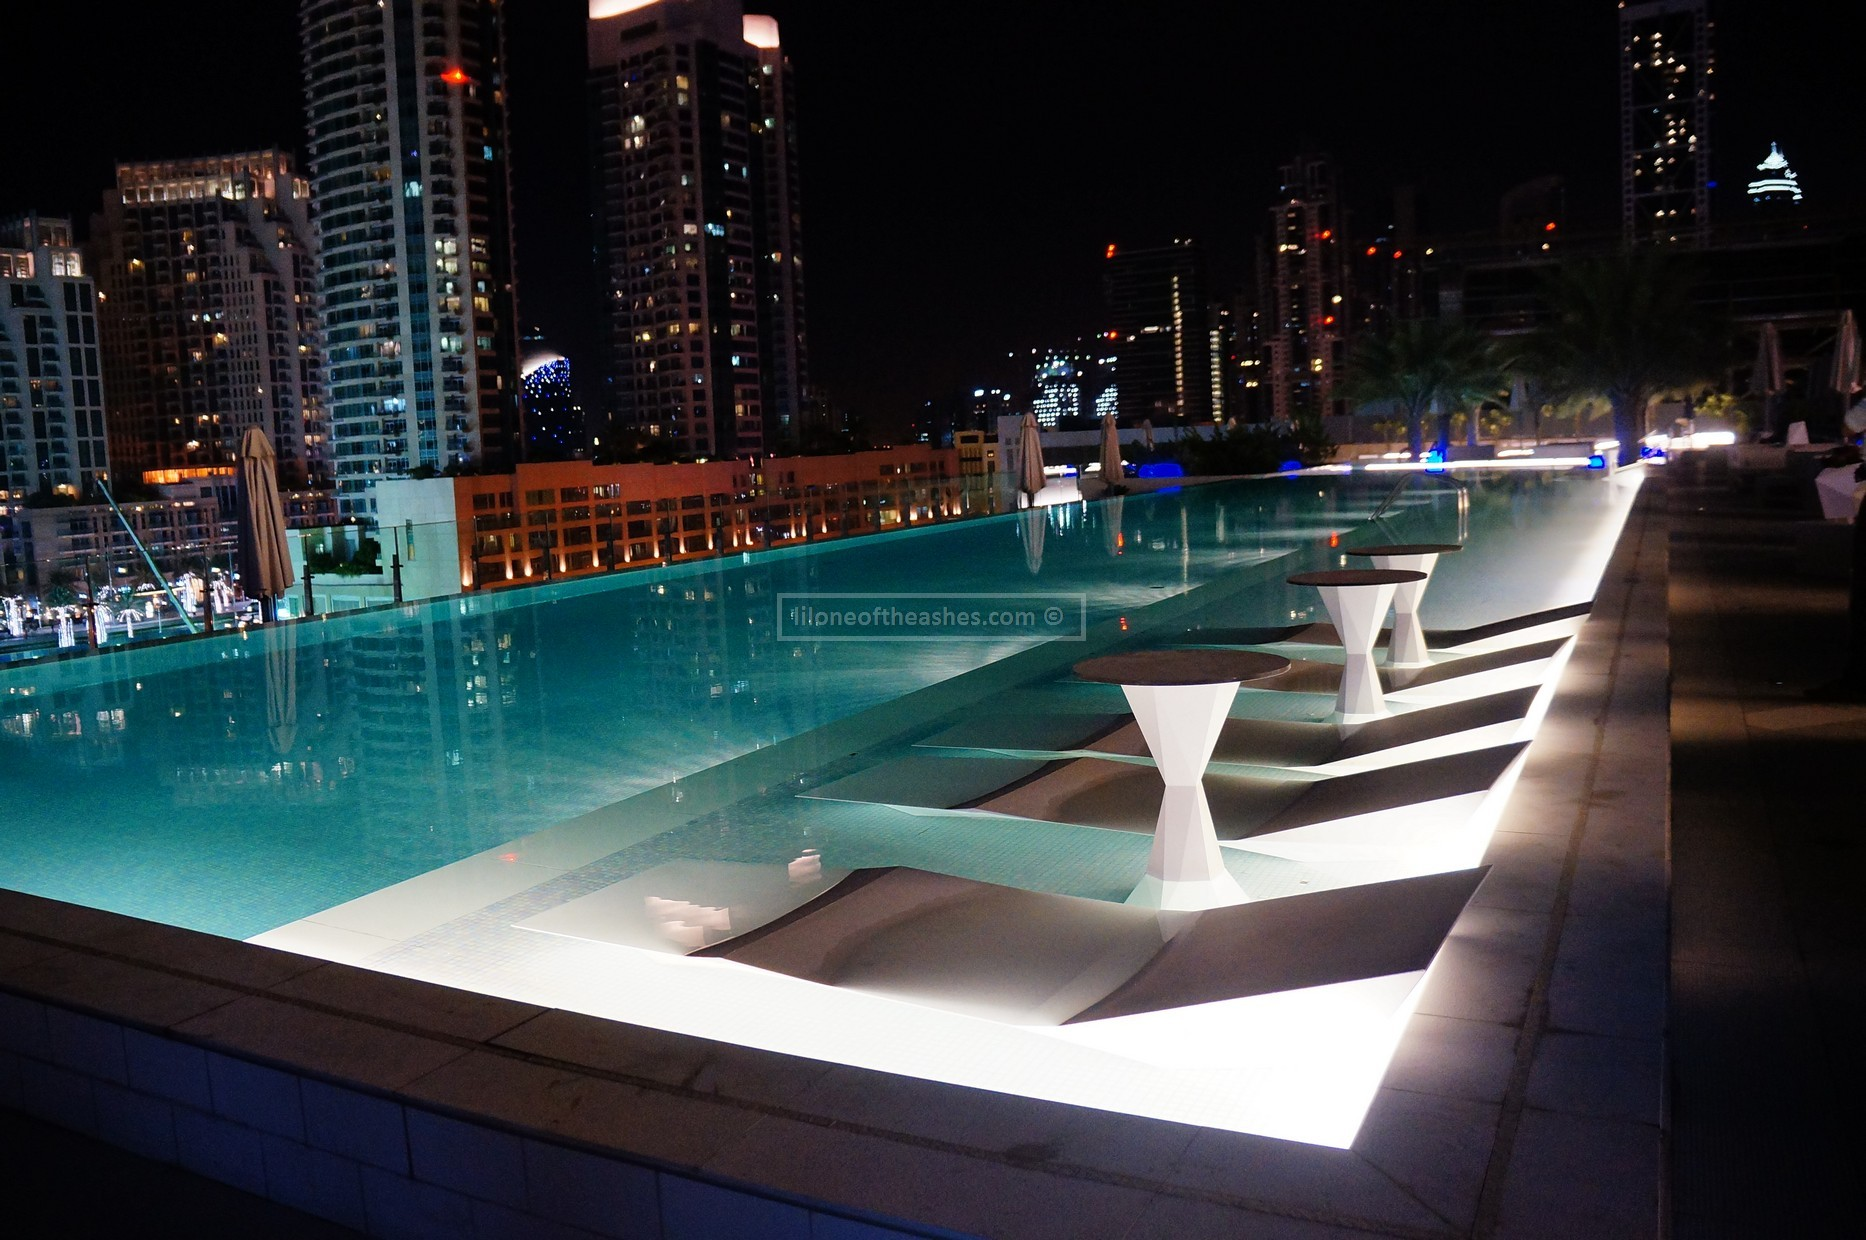 Above @ Sofitel Downtown Dubai – Lil One Of The Ashes